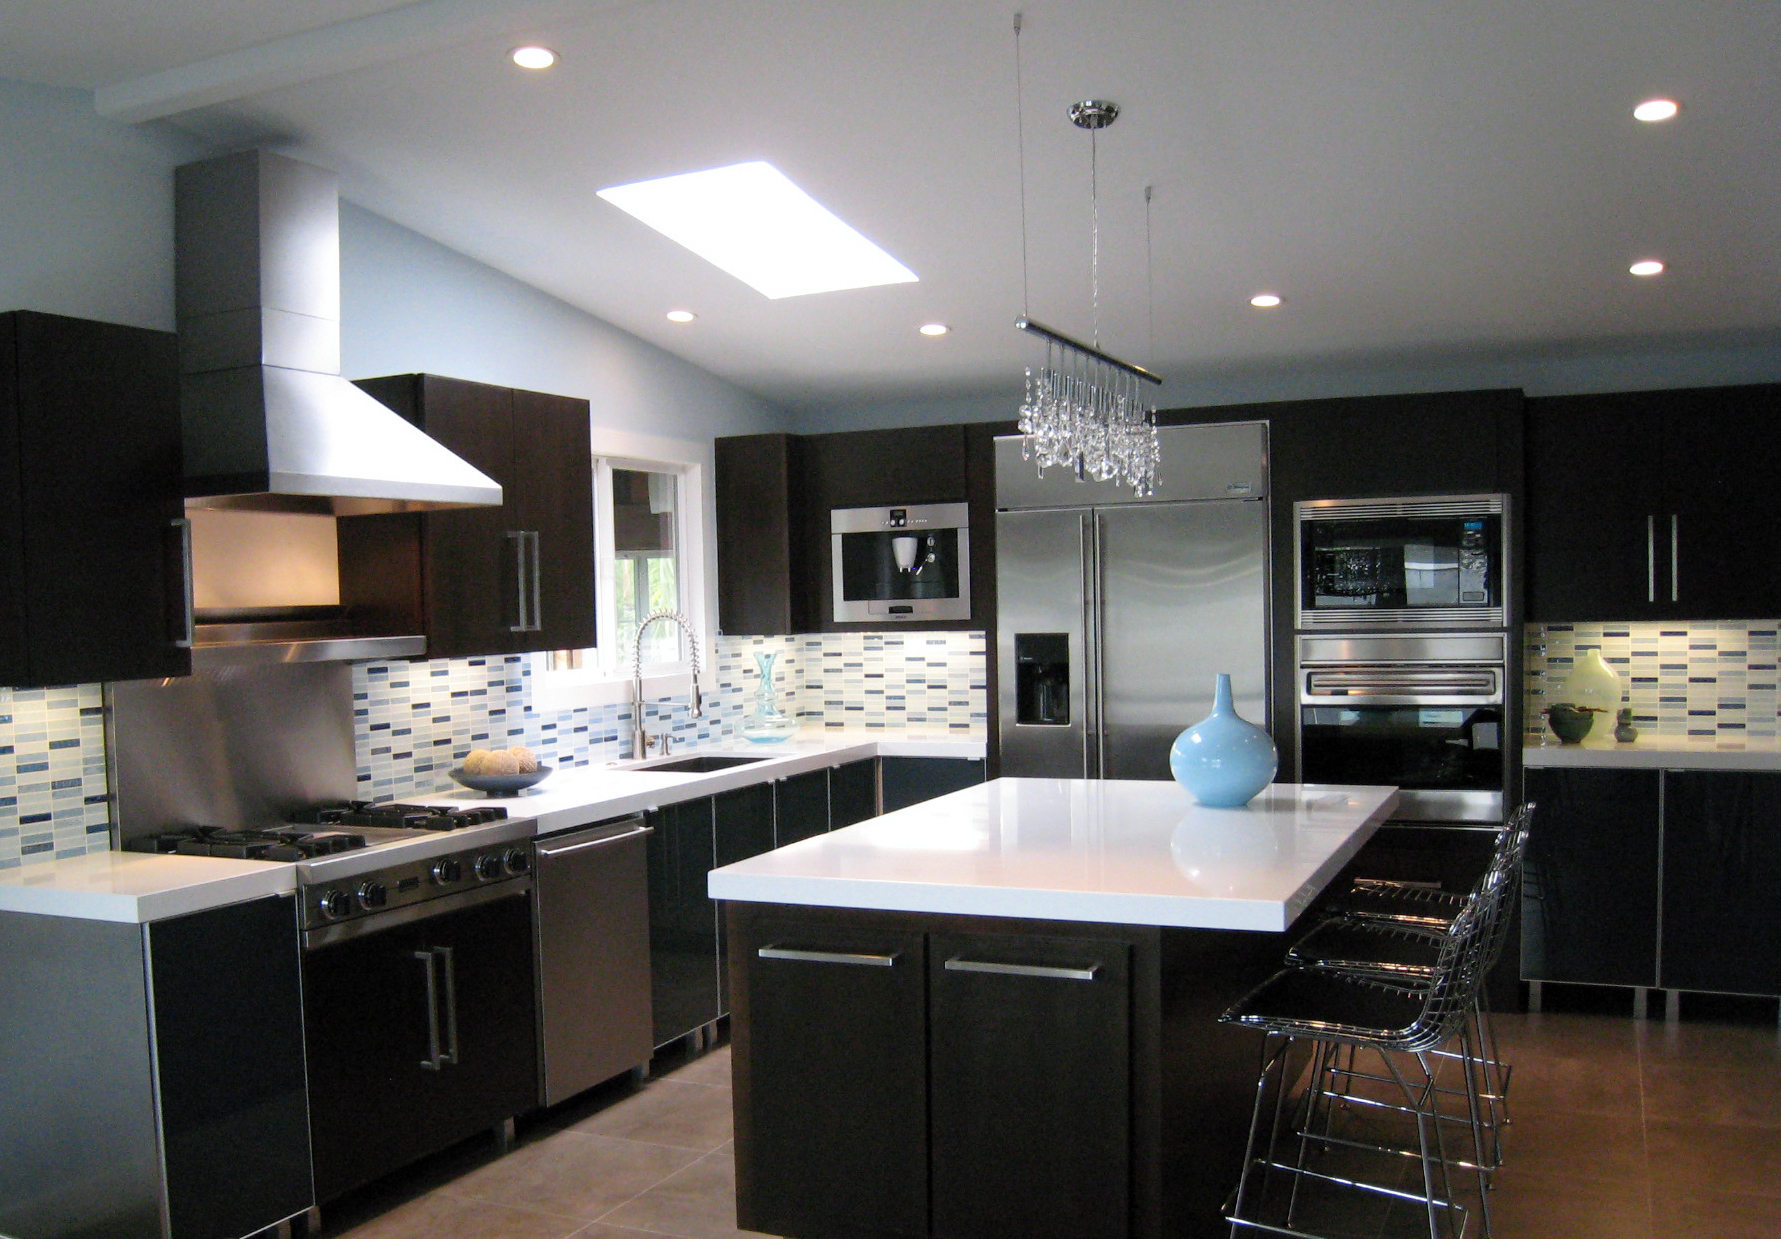 Kitchen Lighting 13 Lustrous Kitchen Lighting Ideas To Illuminate Your Home